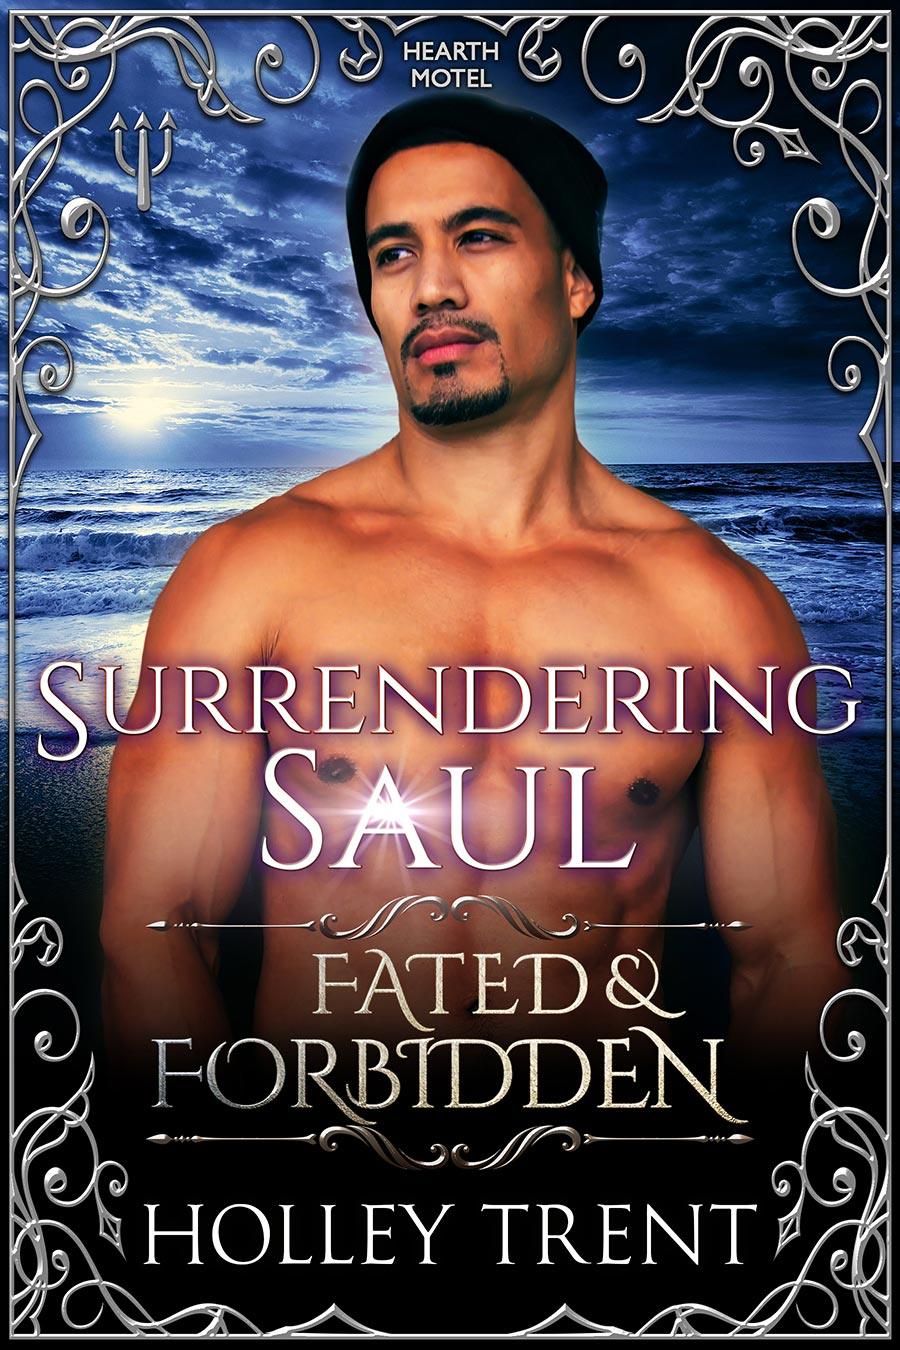 Fated-and-Forbidden---Surrendering-Saul---Holley-Trent.jpg